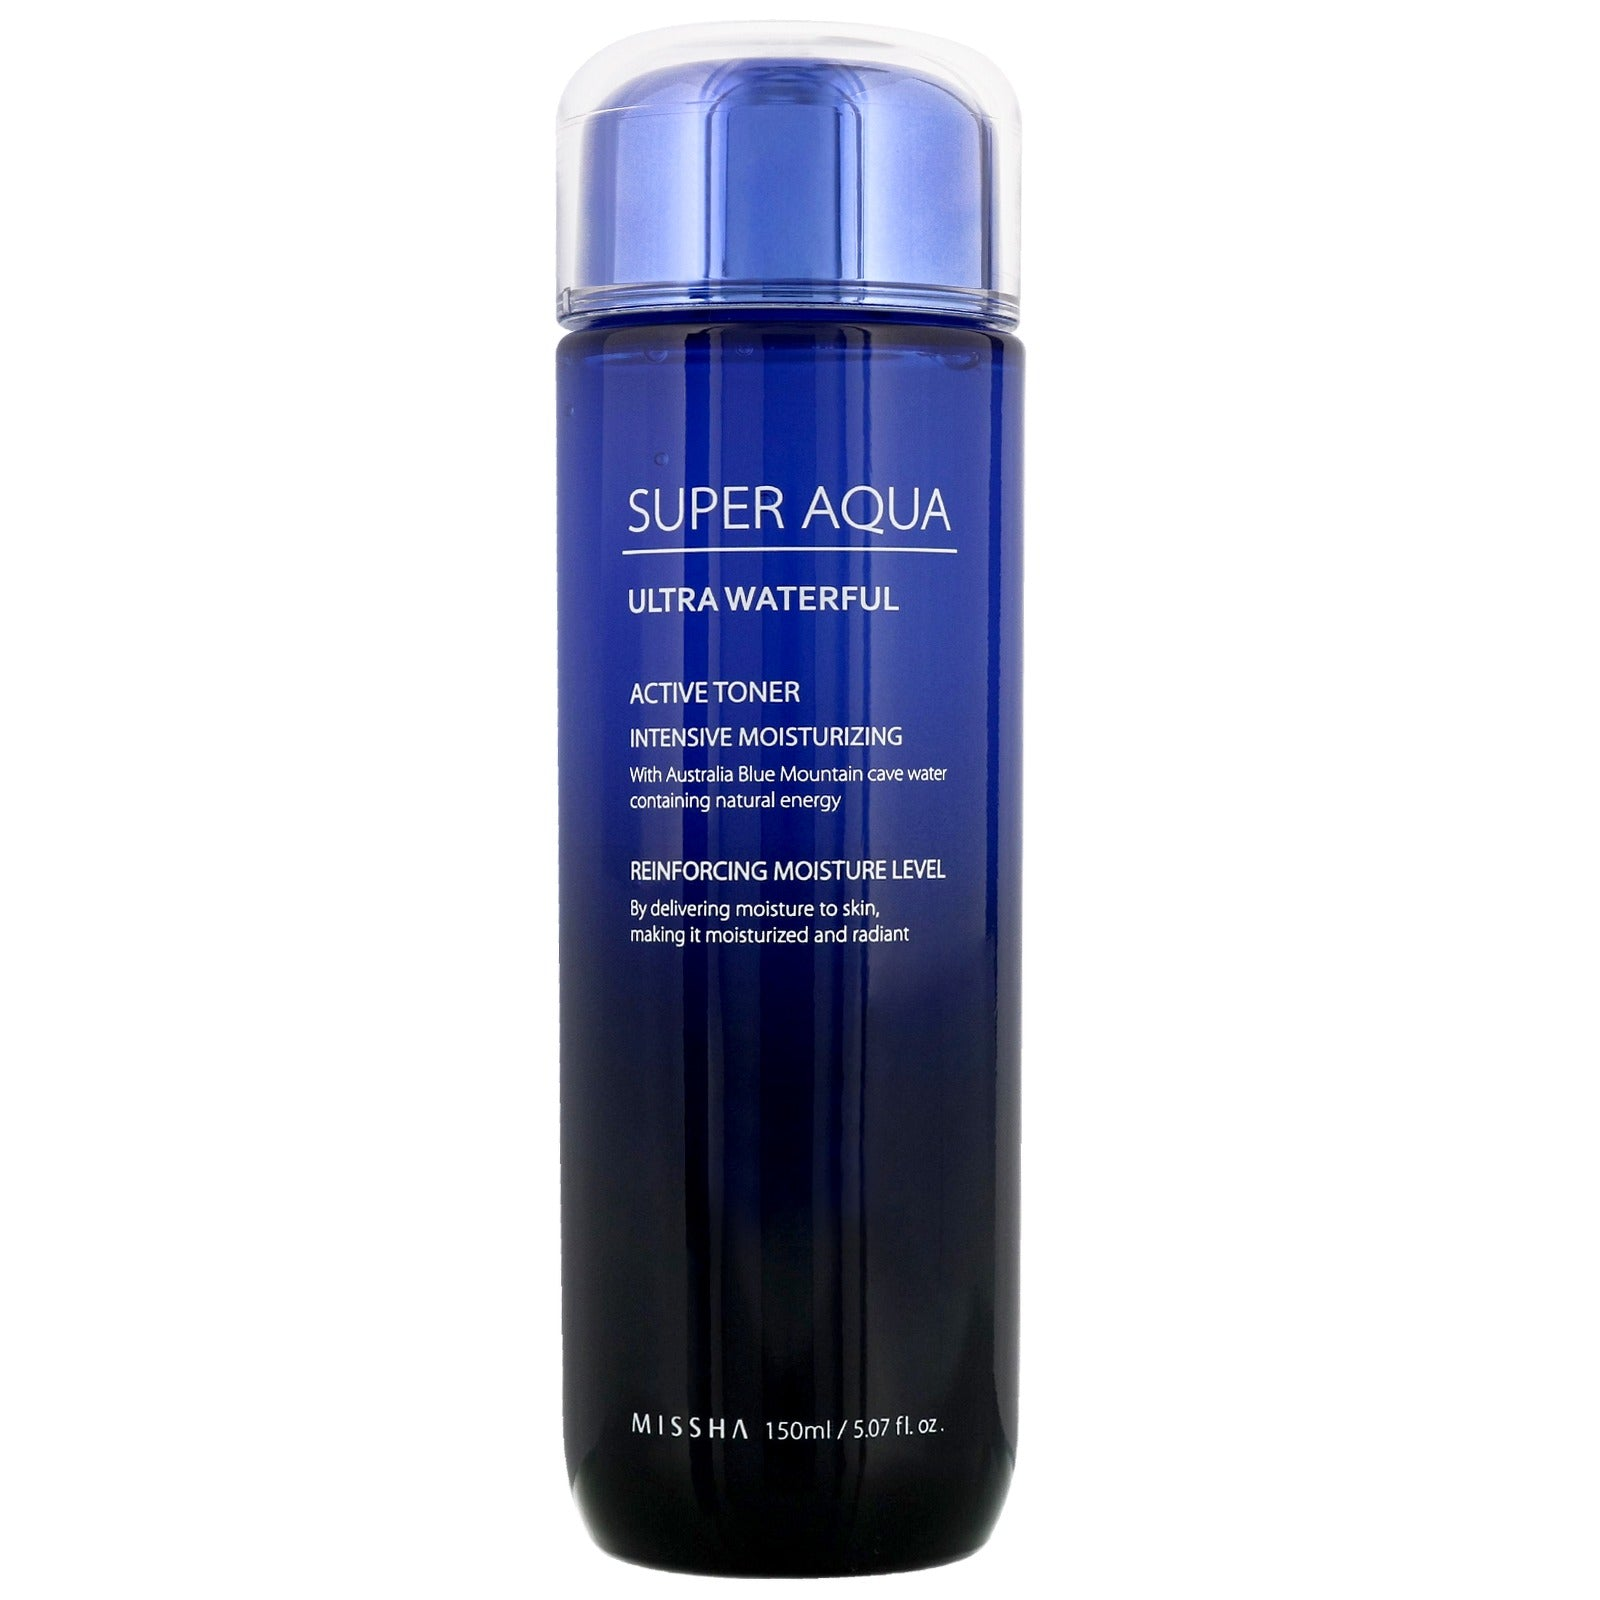 Super Aqua Ultra Waterful Active Toner Missha